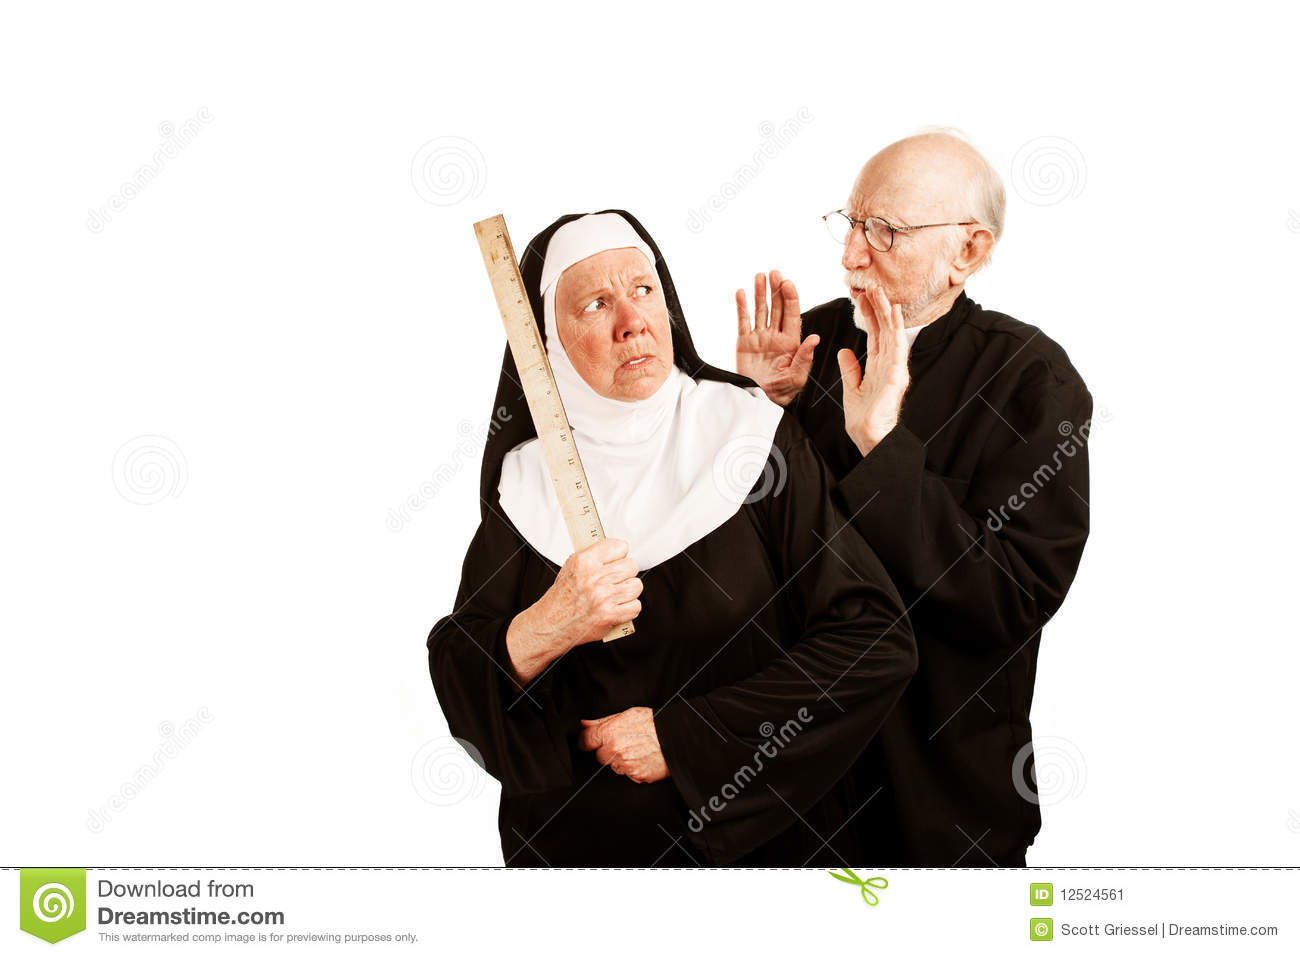 Funny Priest Admonishes Angry Nun With Ruler As Weapon